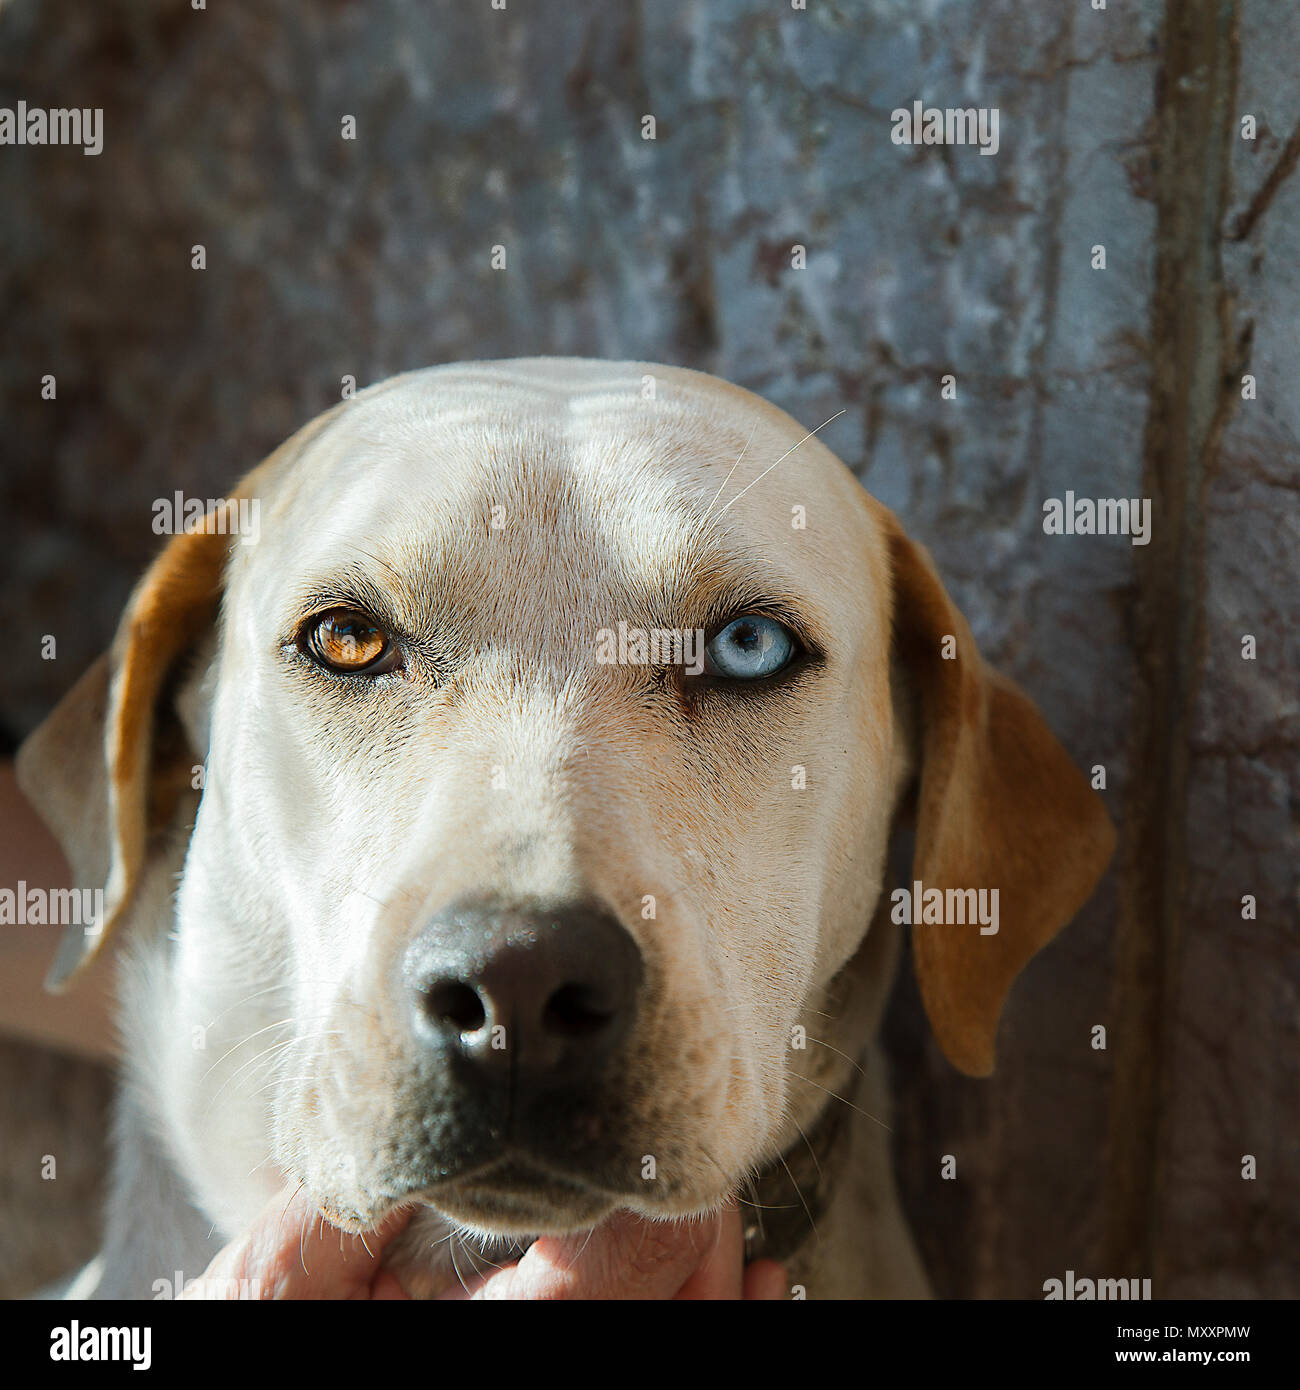 Lab Mix  Dog Portrait with a Brown and Blue Eye. Stock Image. - Stock Image